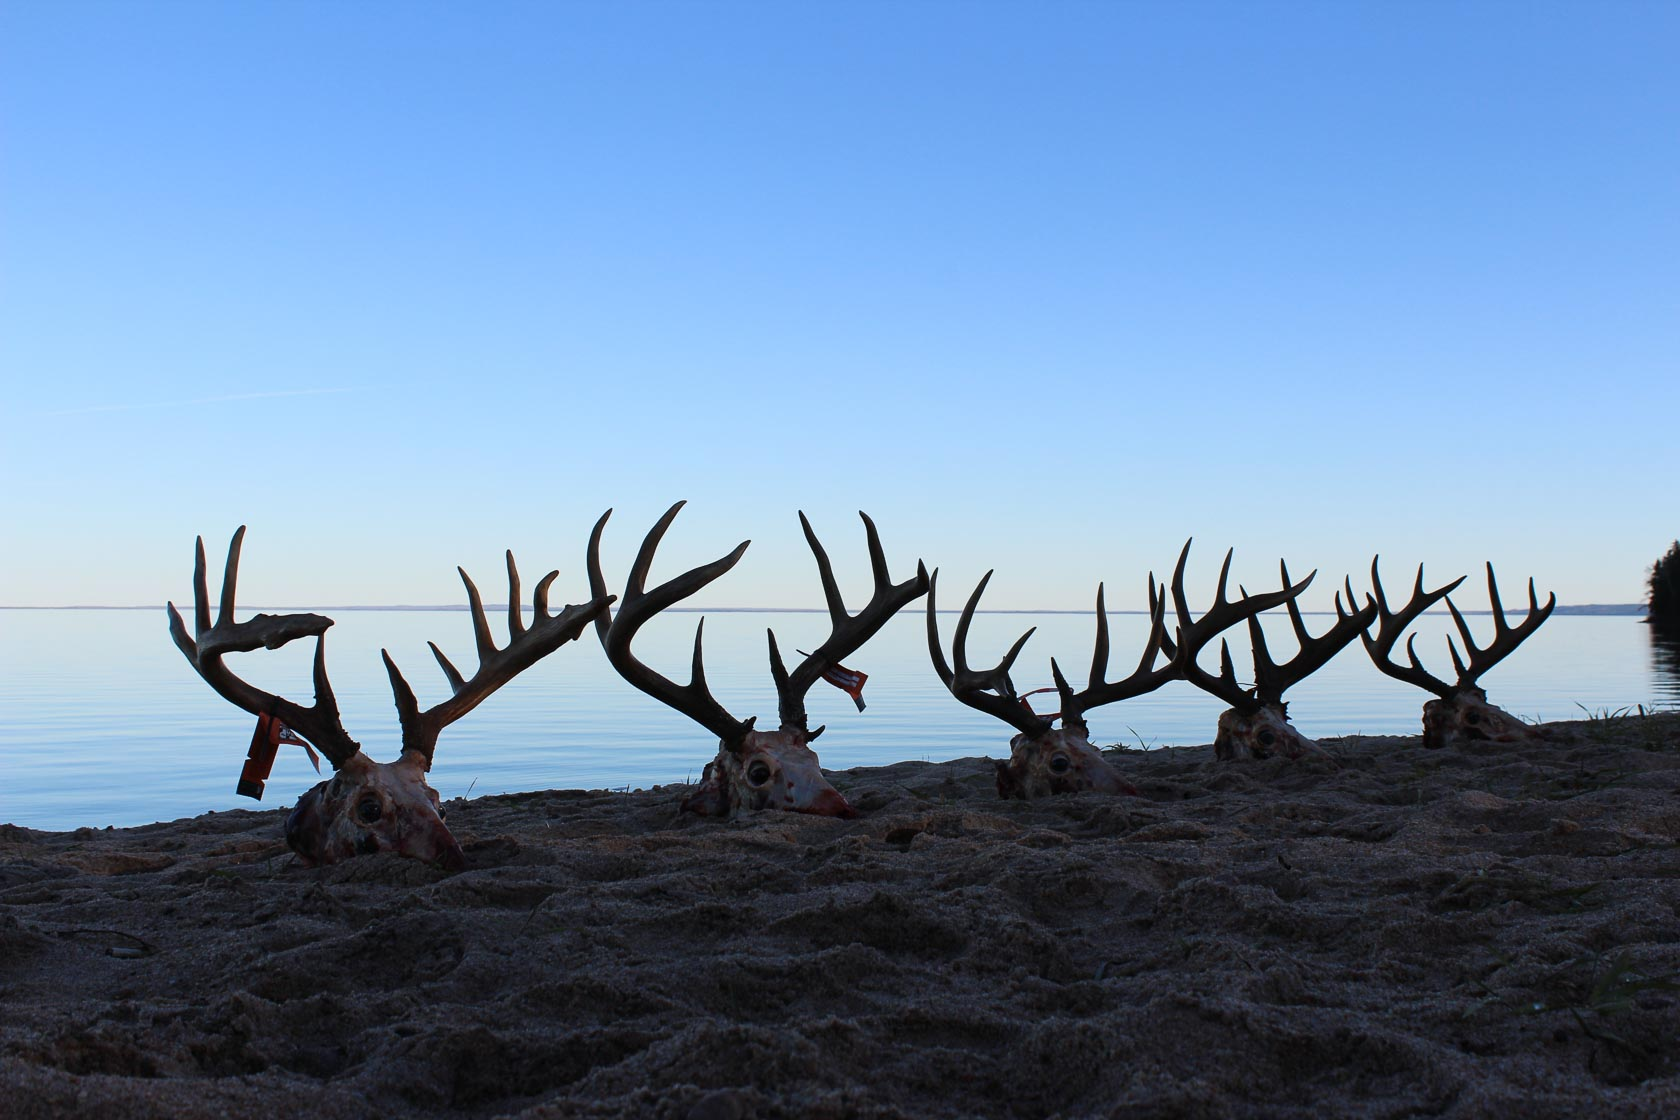 Several skulls of antlered deer are lined up on the beach along Smoothstone Lake in Saskatchewan, Canada.